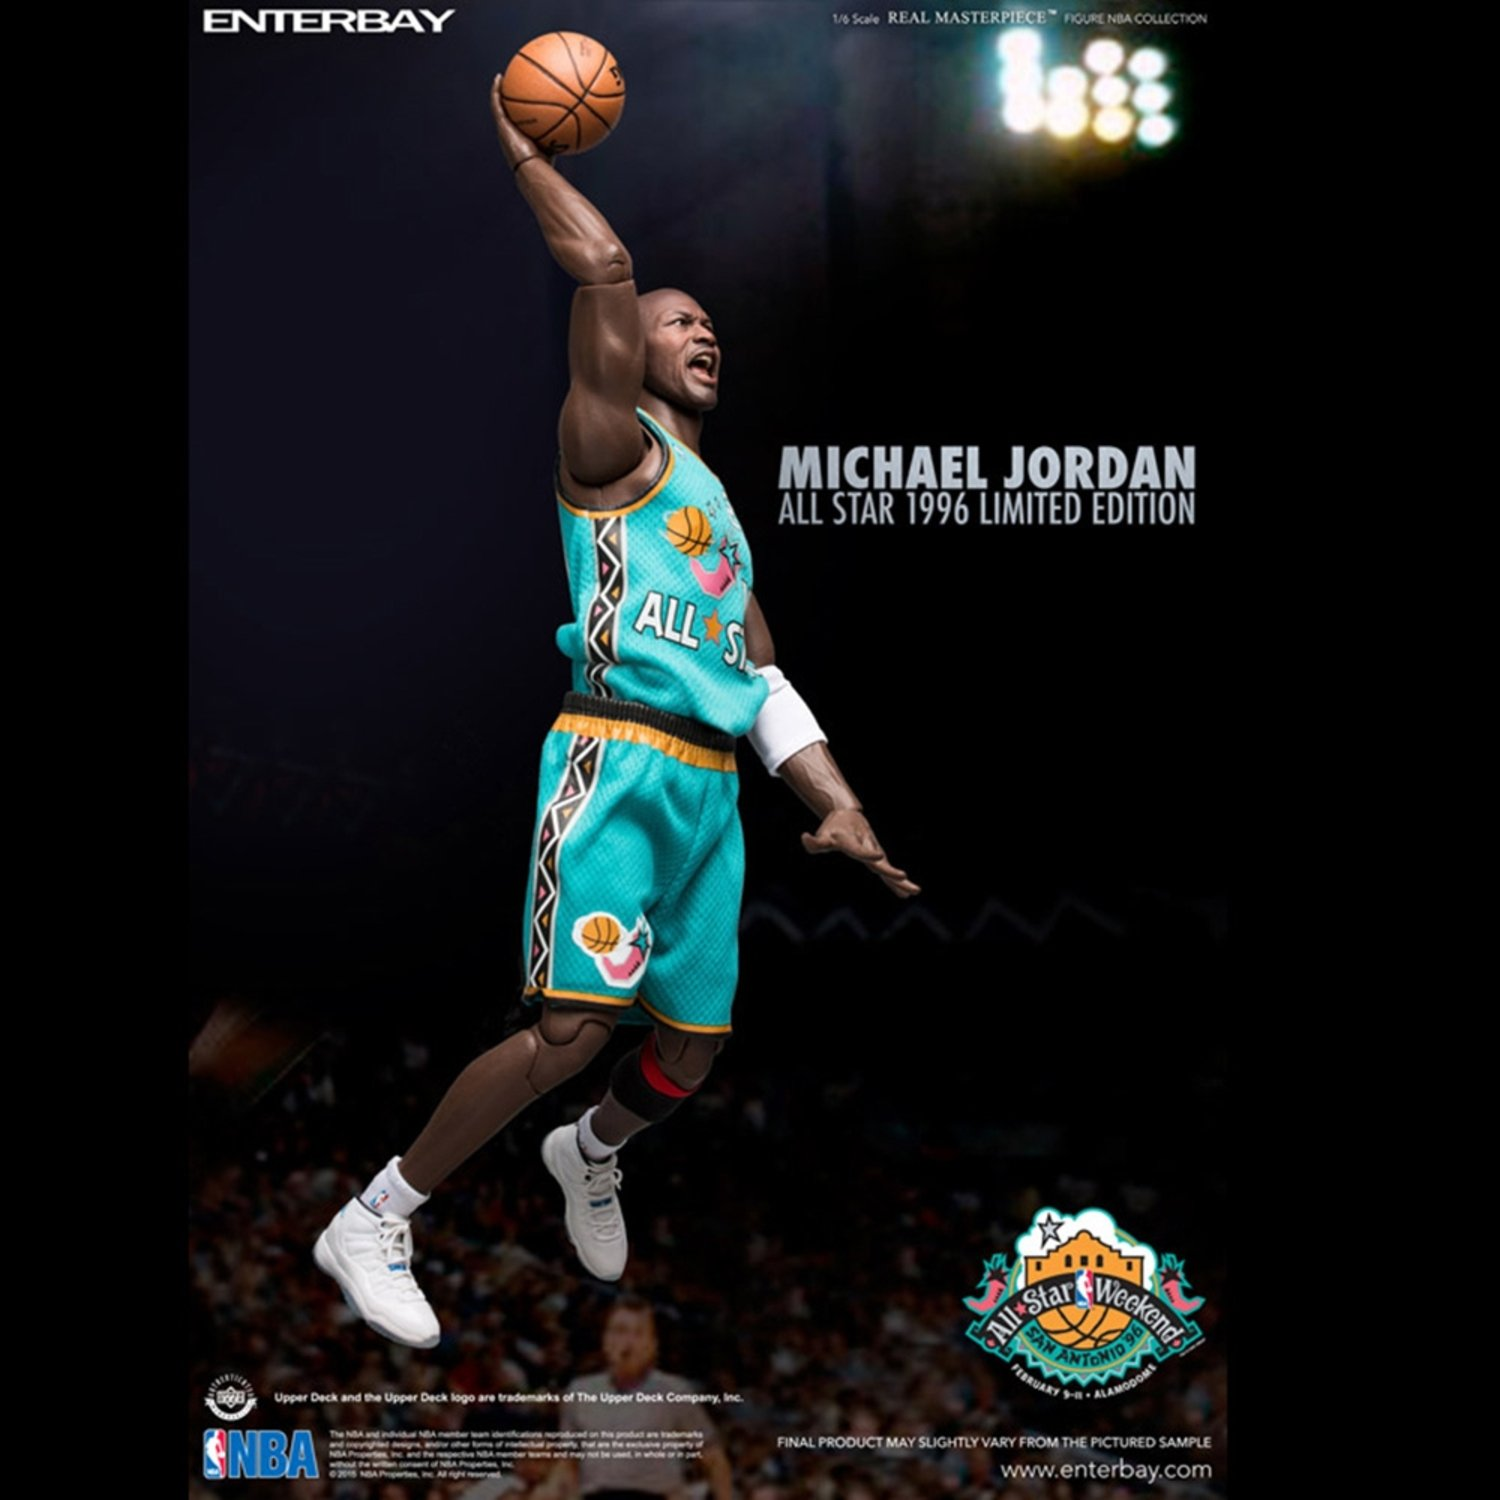 NBA Michael Jordan 1996 All-Star Game 1:6 Scale Real Masterpiece Action Figure by Animewild